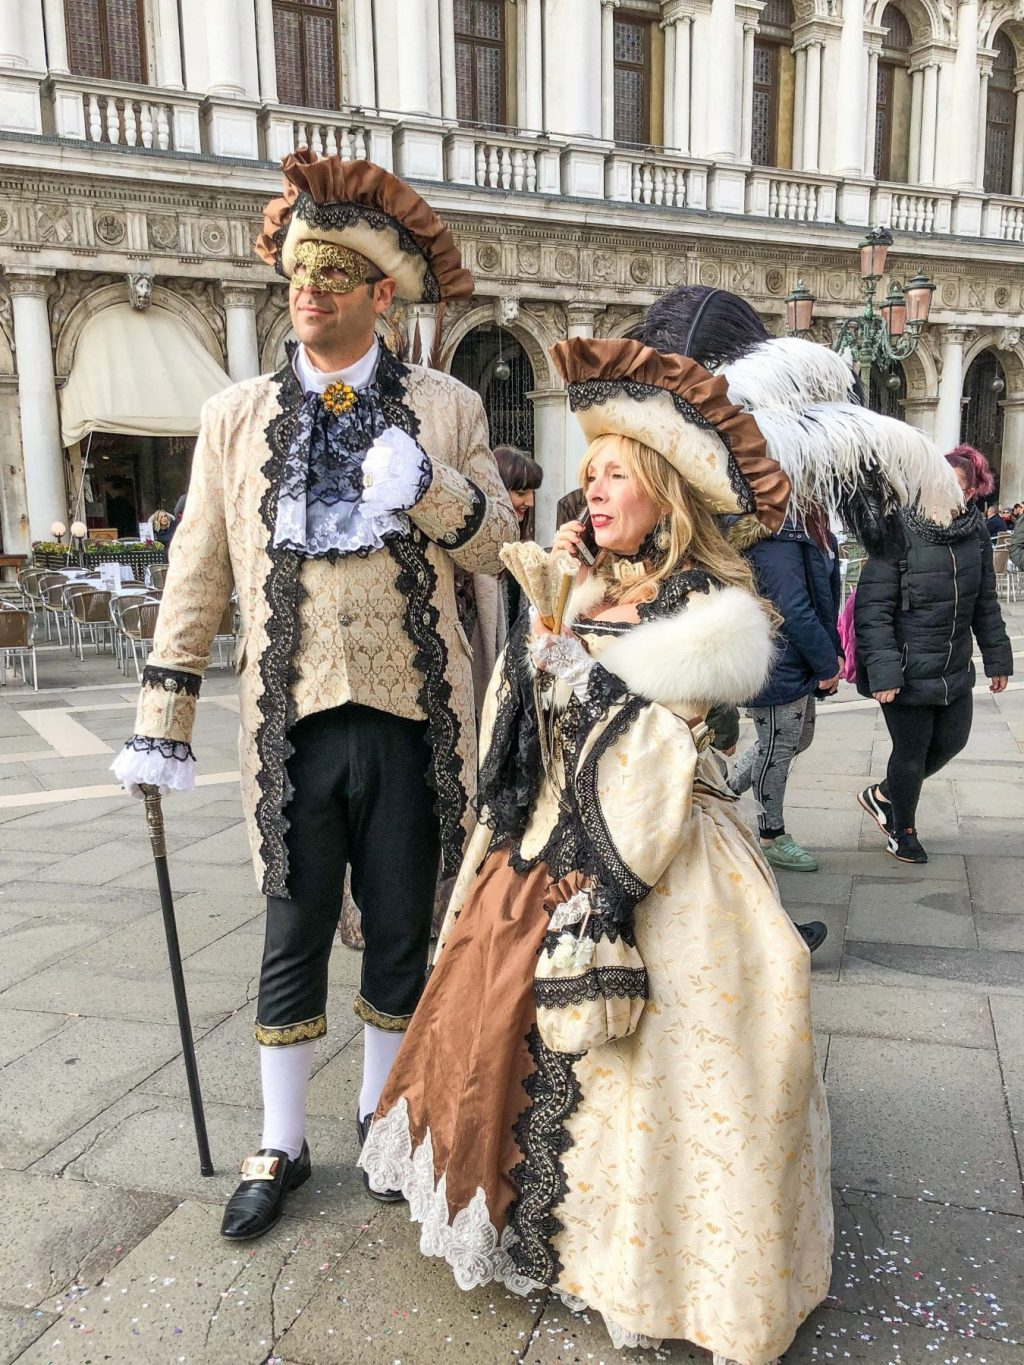 Original Costumes.Best 42 Masks Costumes From Carnaval Venice Italy Aka